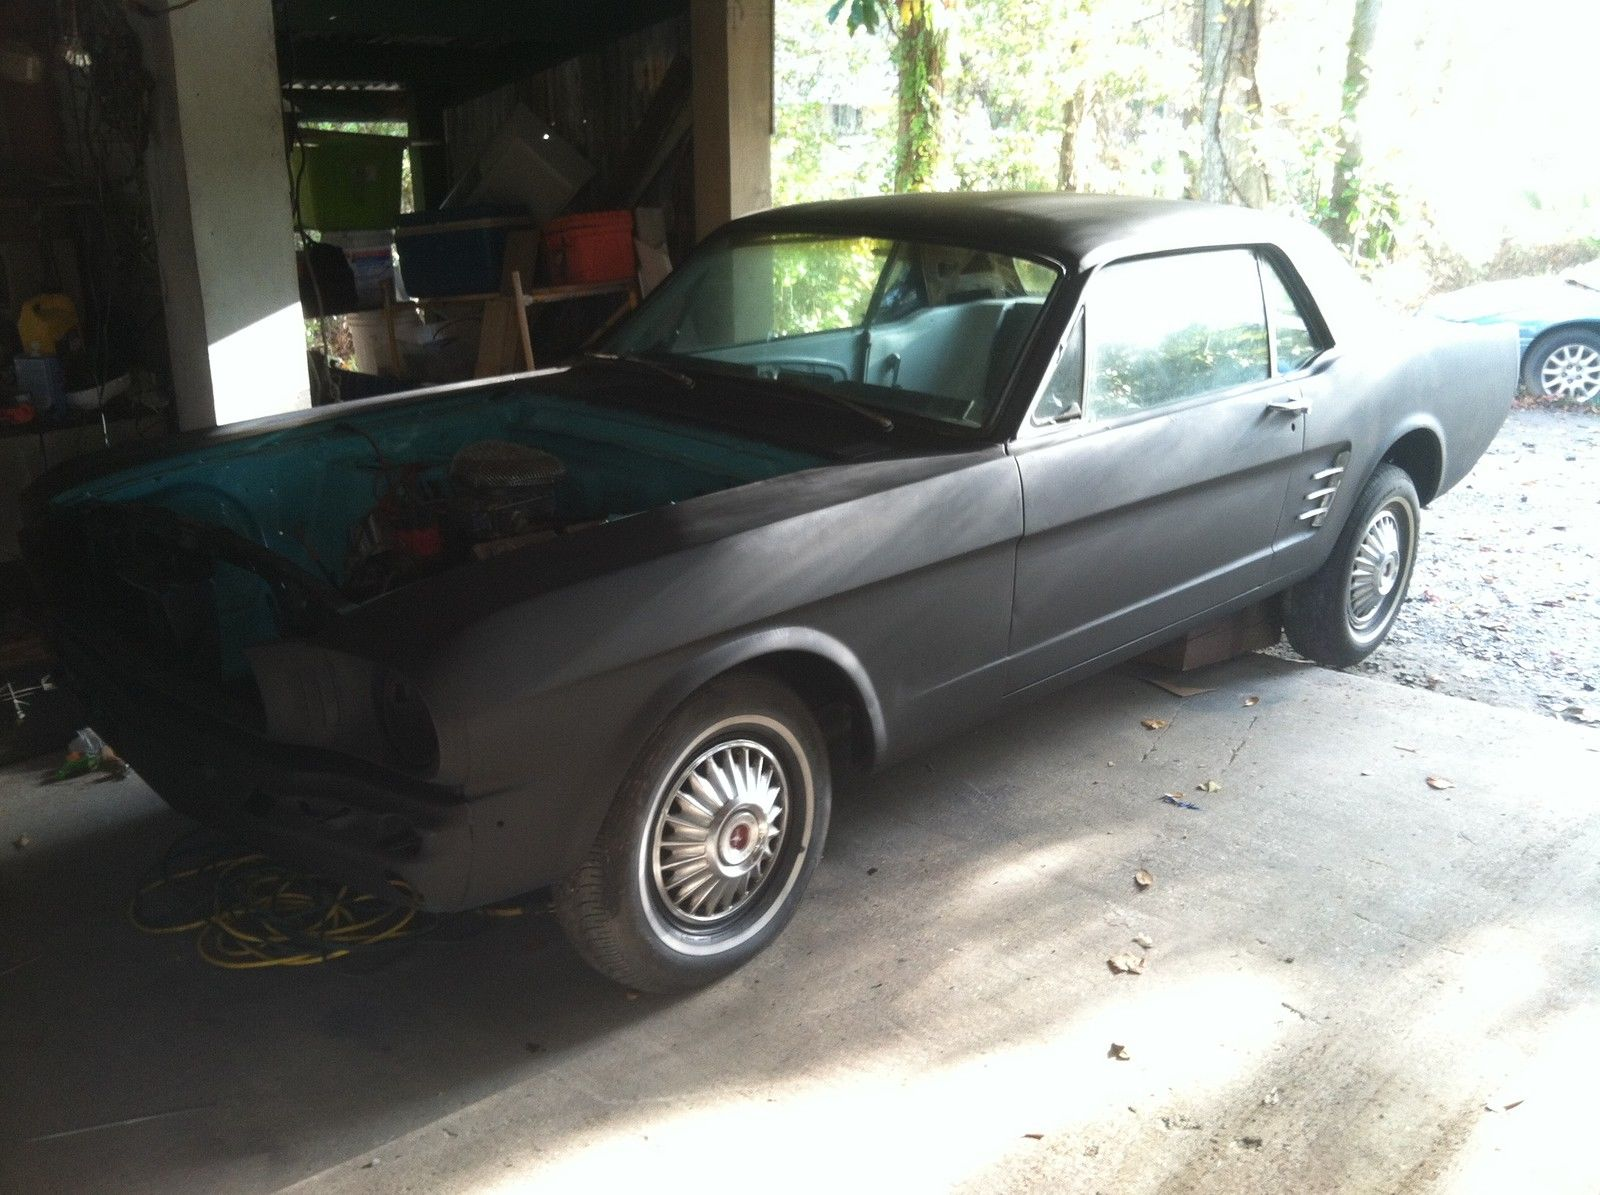 66 Ford Mustang Project Car Needs Work